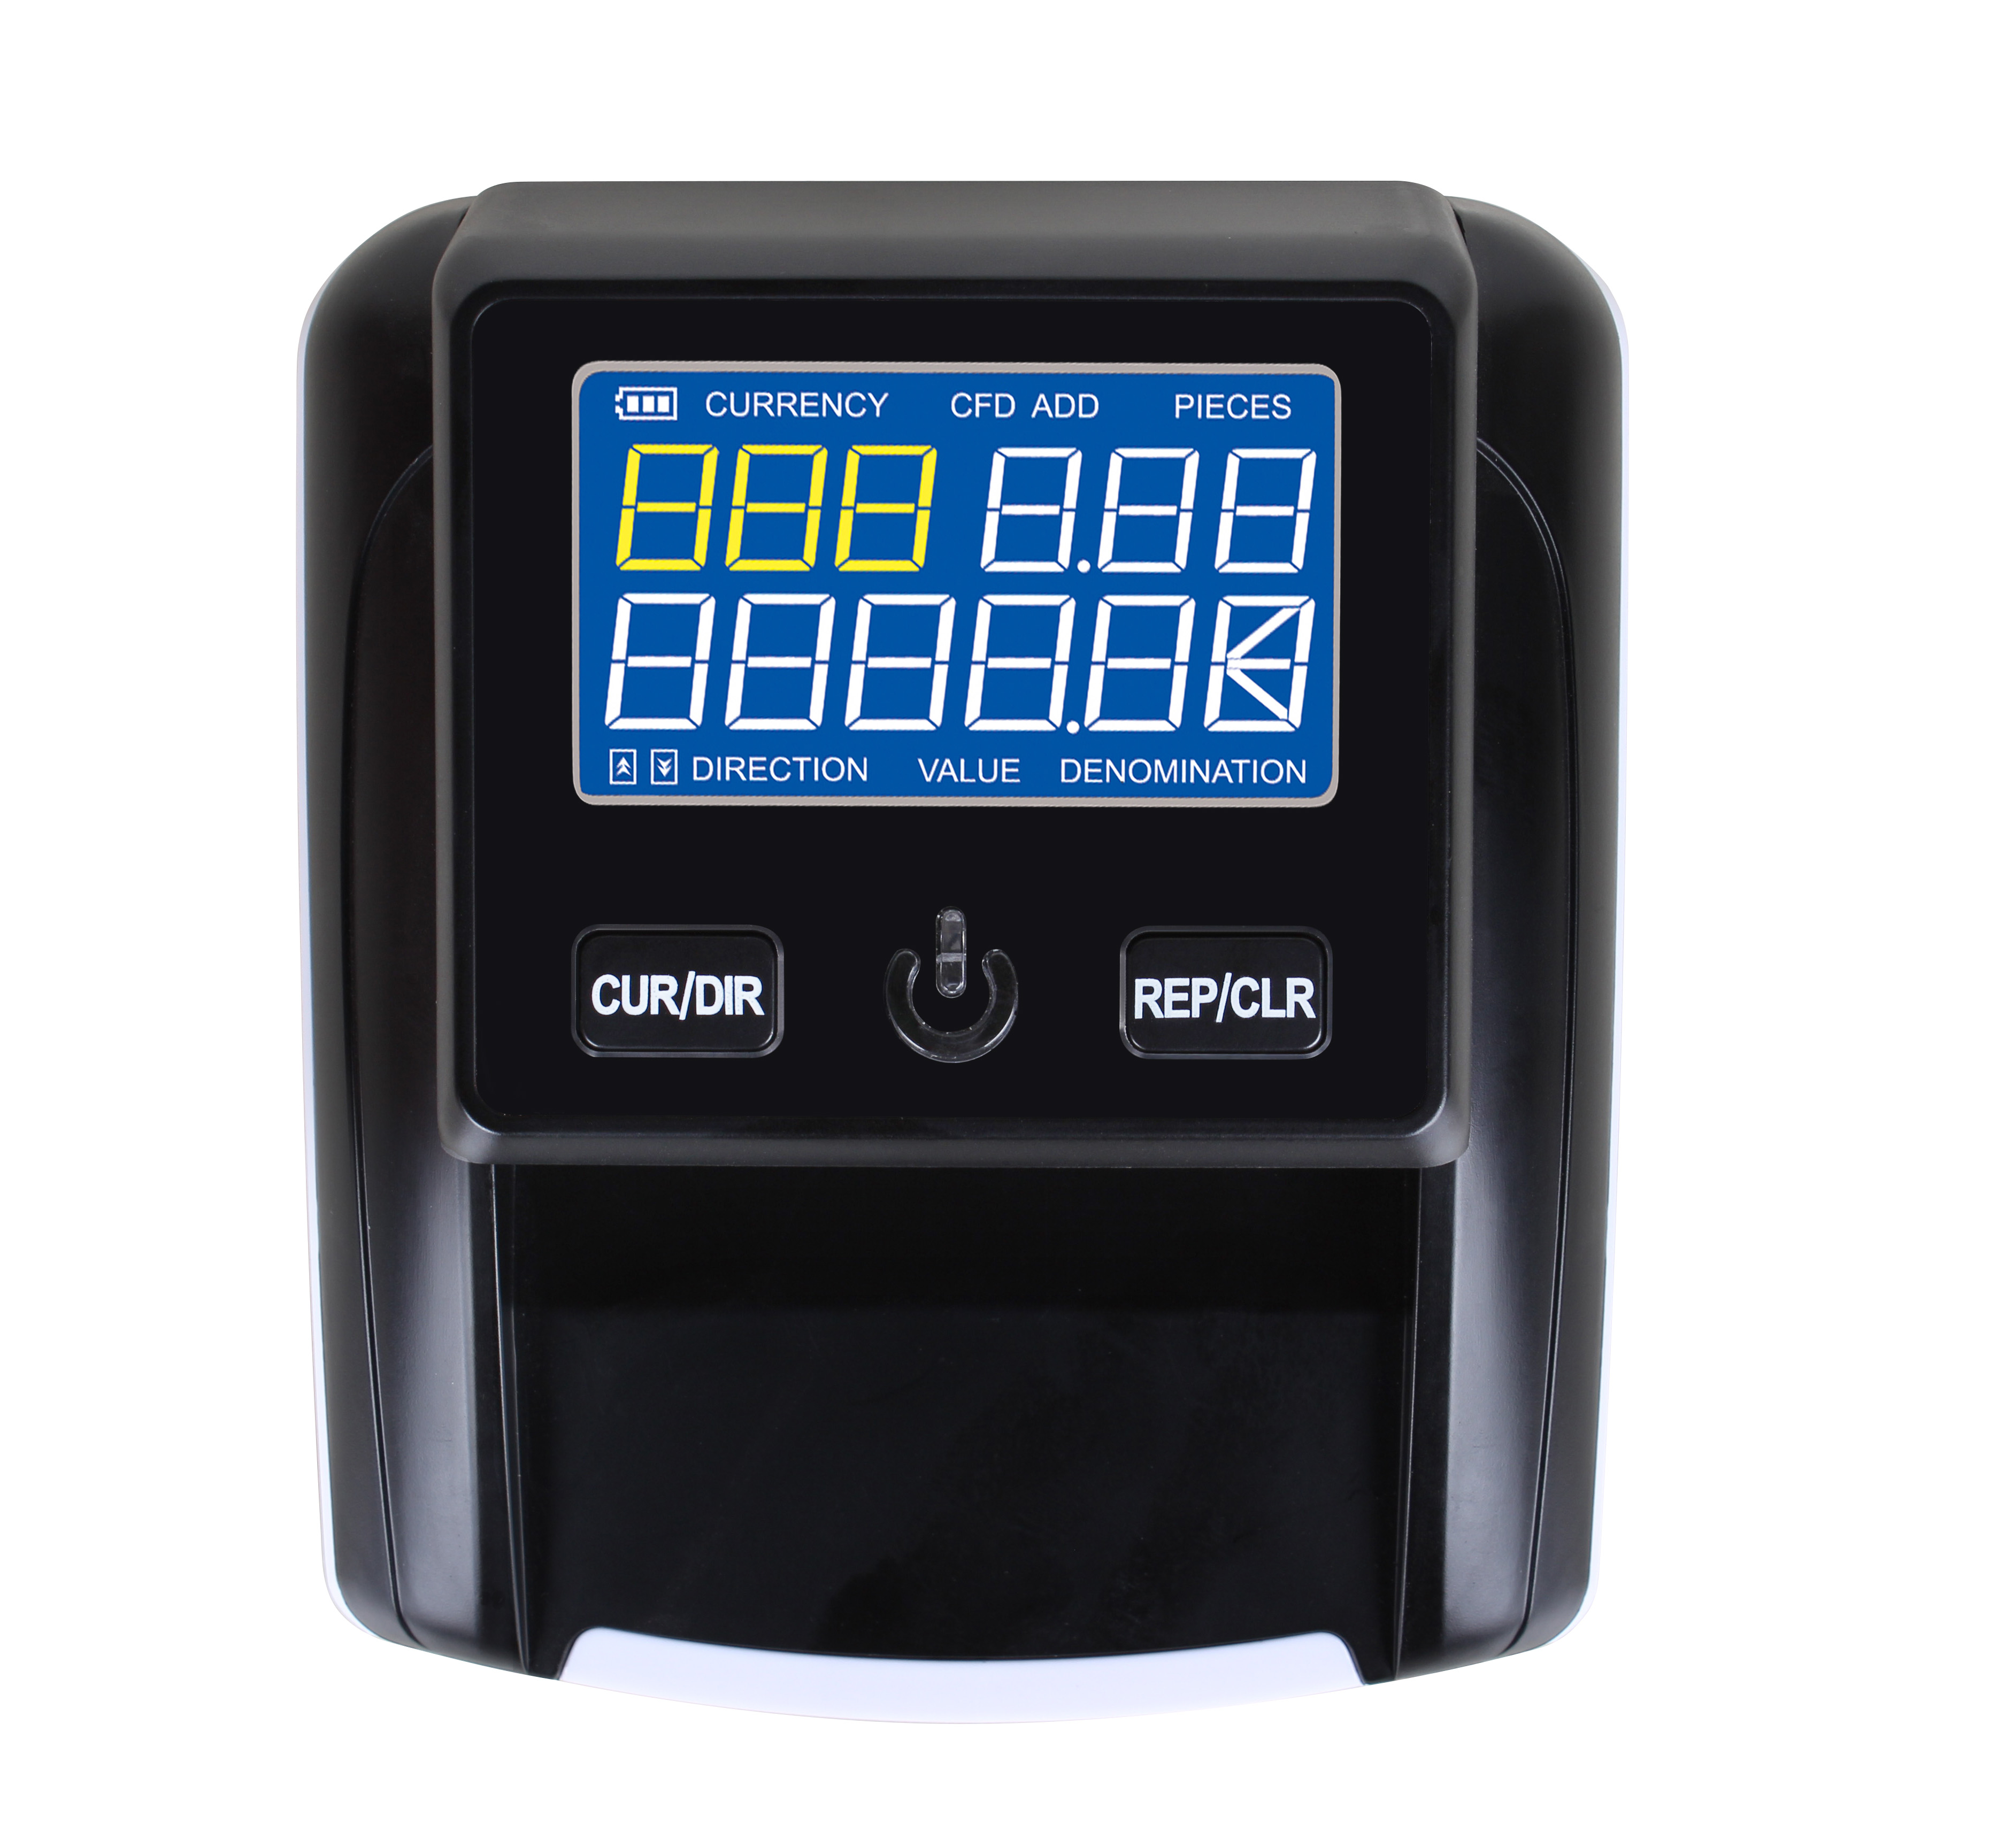 LCD display Portable Banknote Detector USD/EUR/GBP/RUB/BRC/IQD/PRK Fake Money Detecting machine